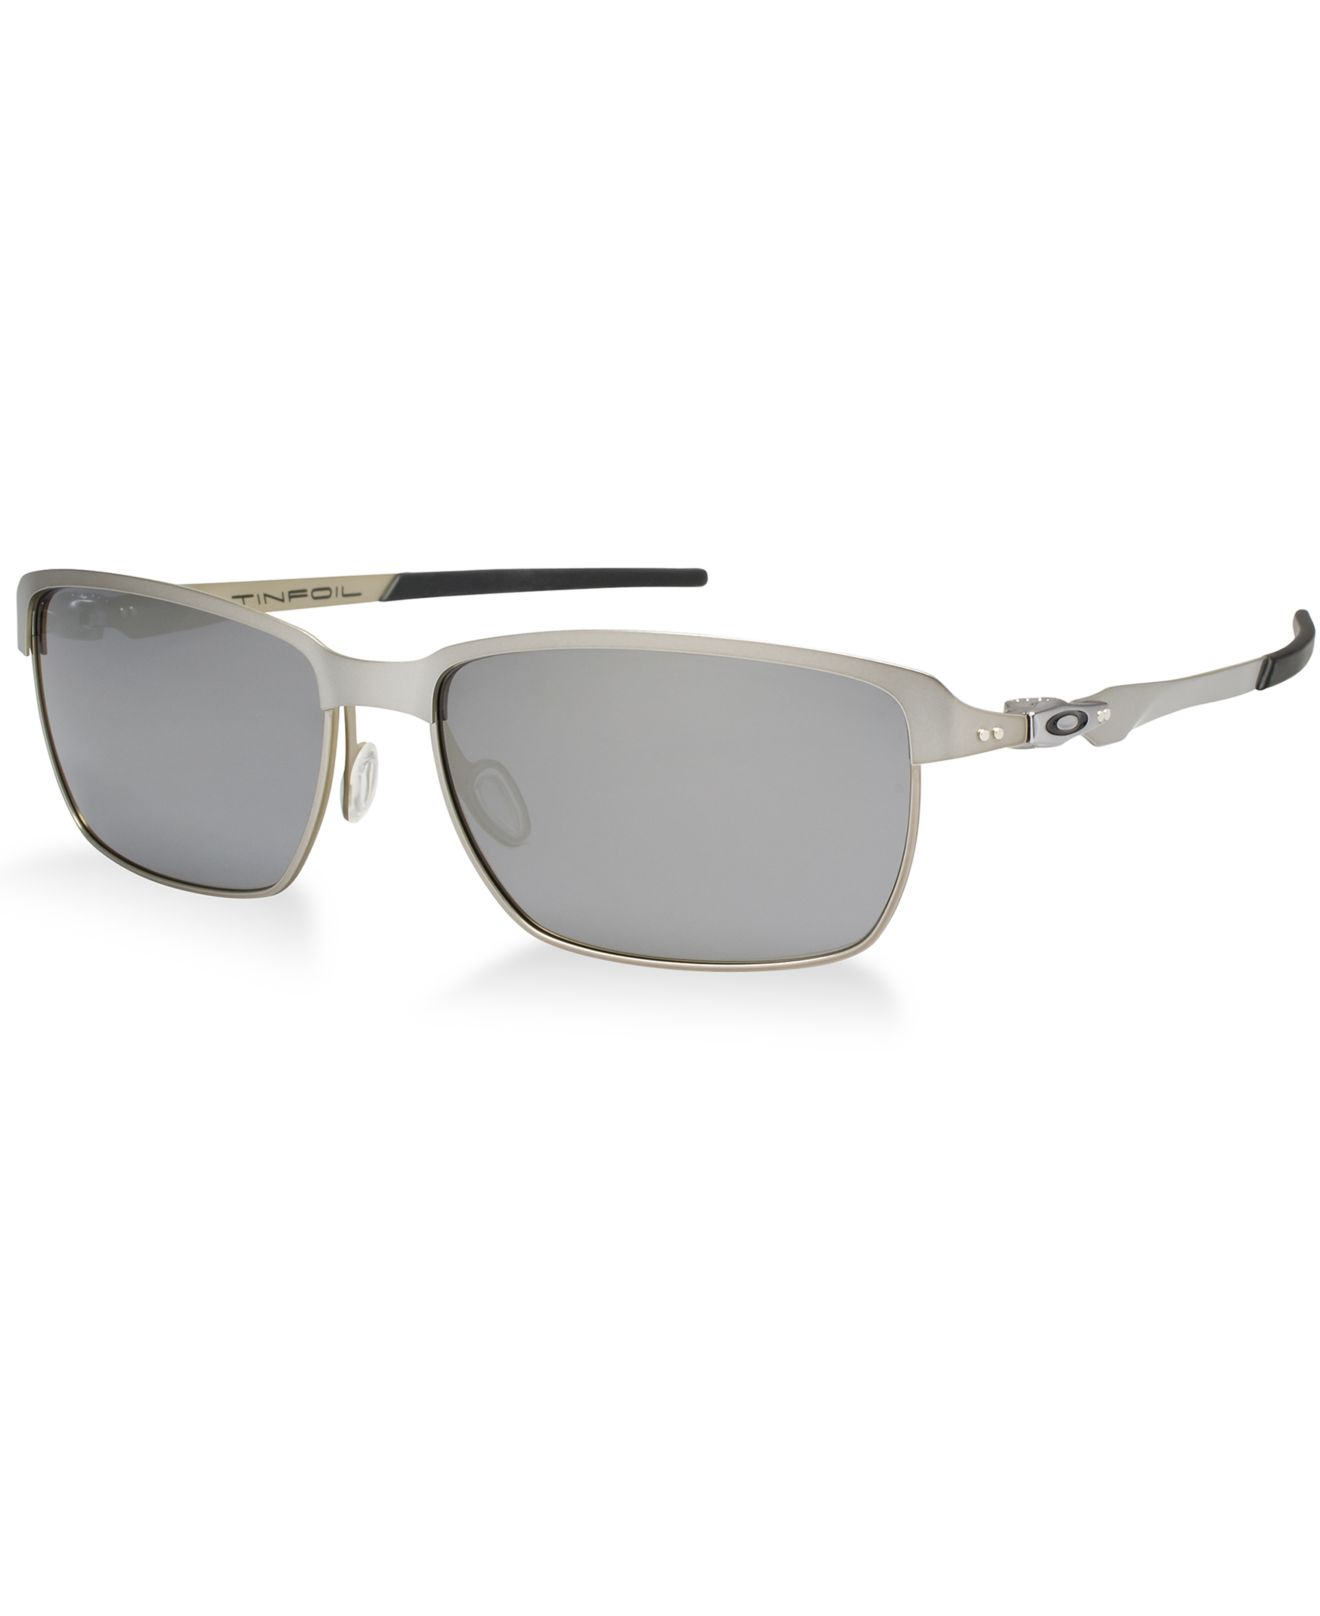 4f58fc4d0383f ... discount code for lyst oakley oo4083 tinfoil in metallic for men e4aab  79fea